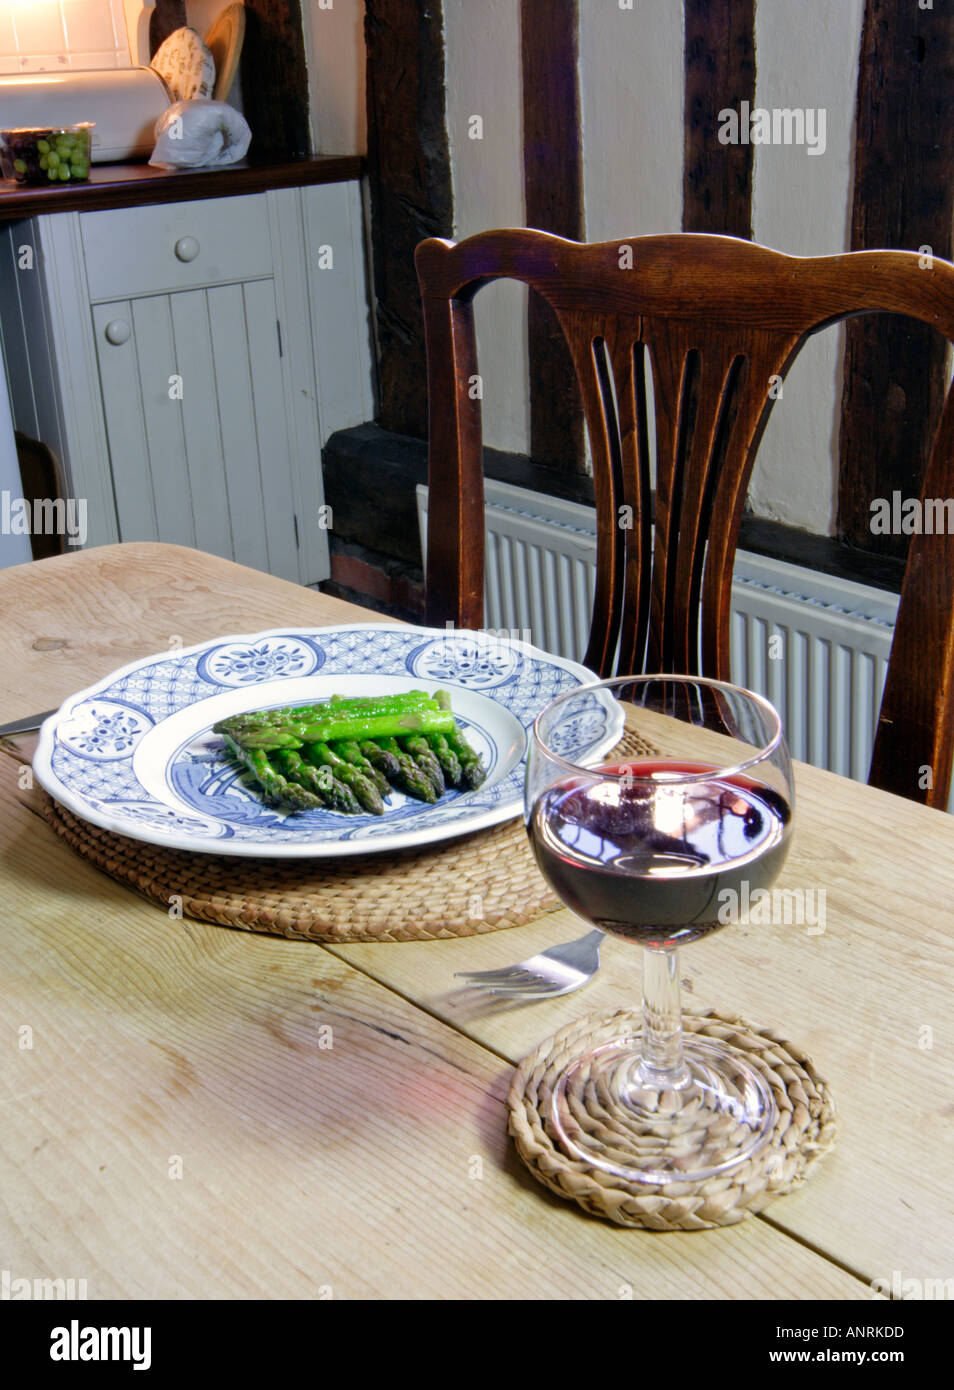 Civilised first course of Asparagus tips with red wine in a traditional timber framed house - Stock Image